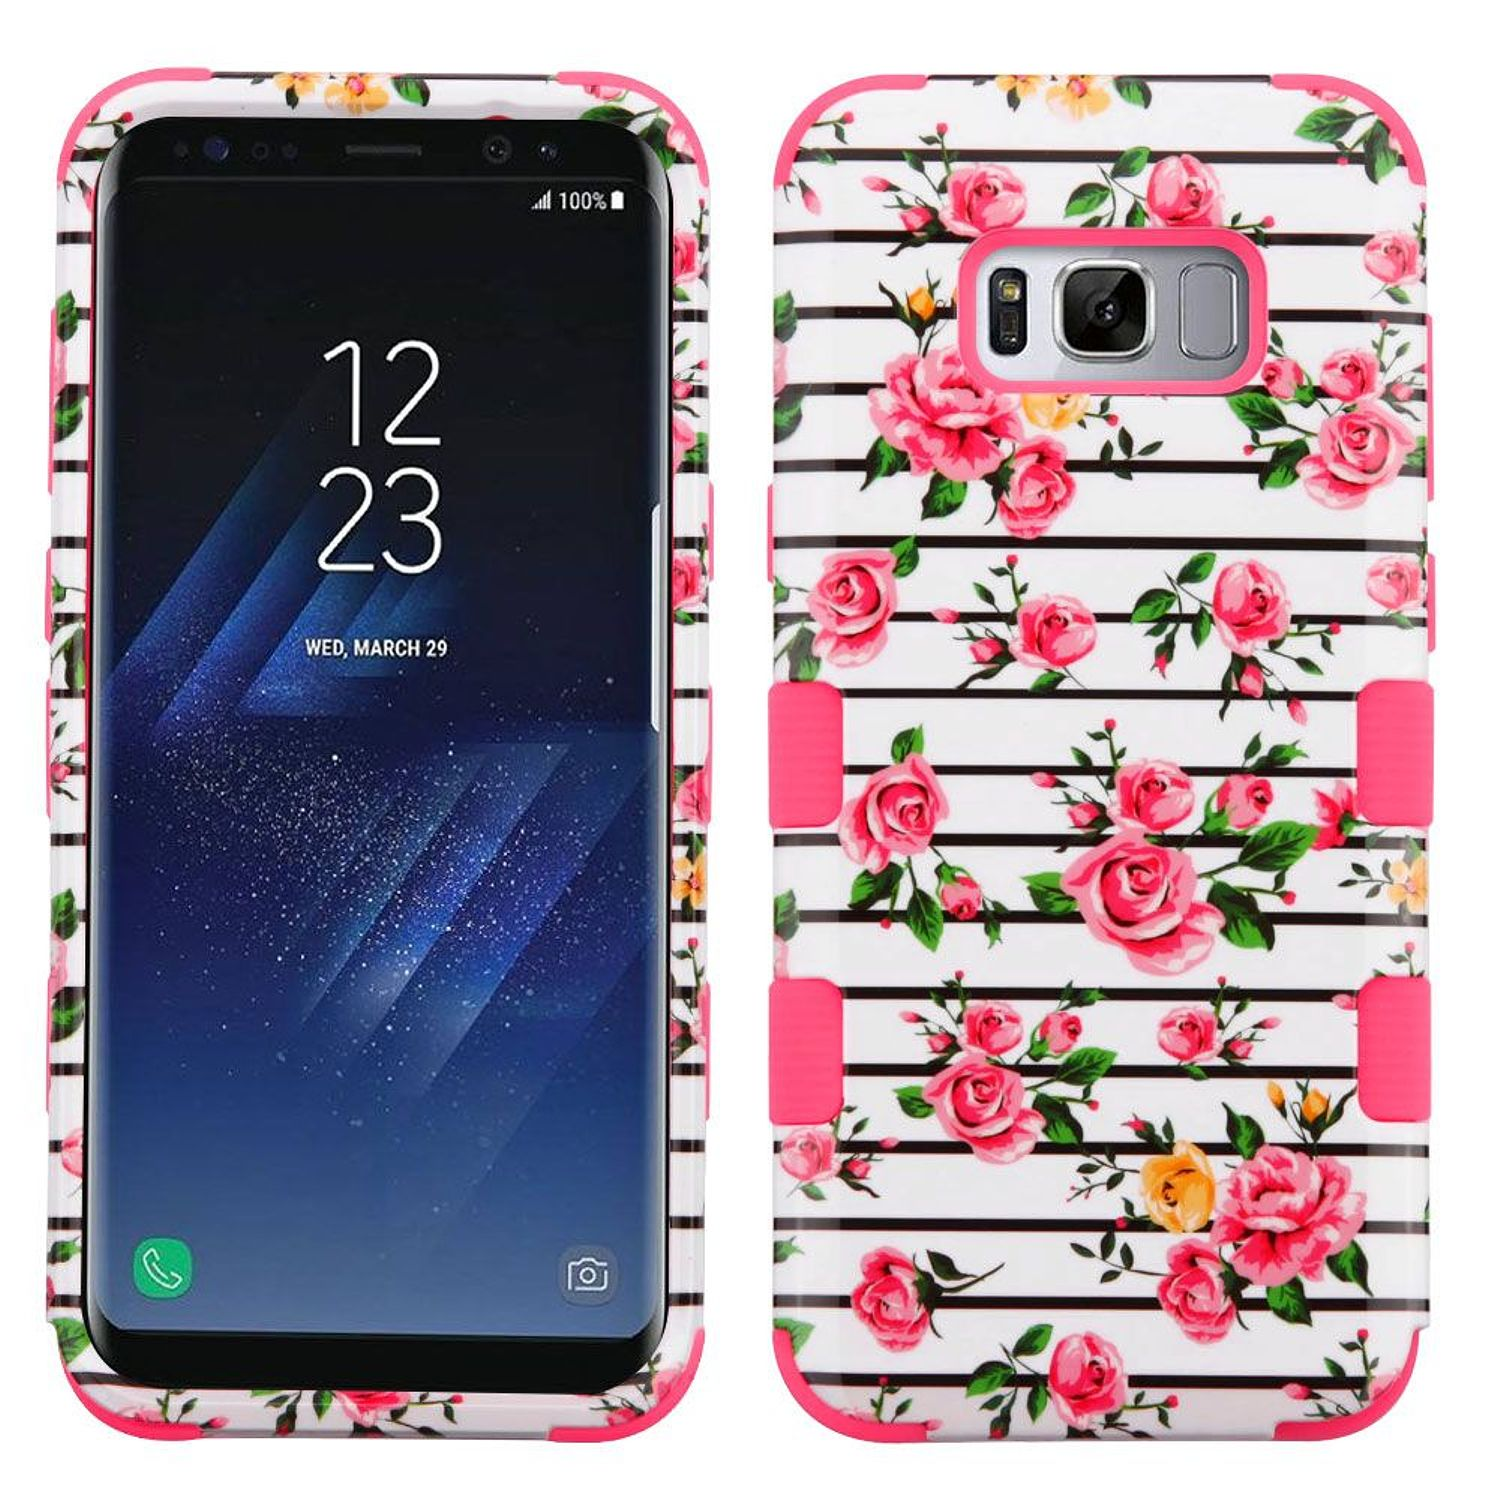 Samsung Galaxy S8+ Case, Samsung Galaxy S8 Plus Case, by Insten Pink Fresh Roses/Electric Pink TUFF Hybrid Shock Absorbing Hard Plastic/Silicone Cover Phone Case For Samsung Galaxy S8+ S8 Plus